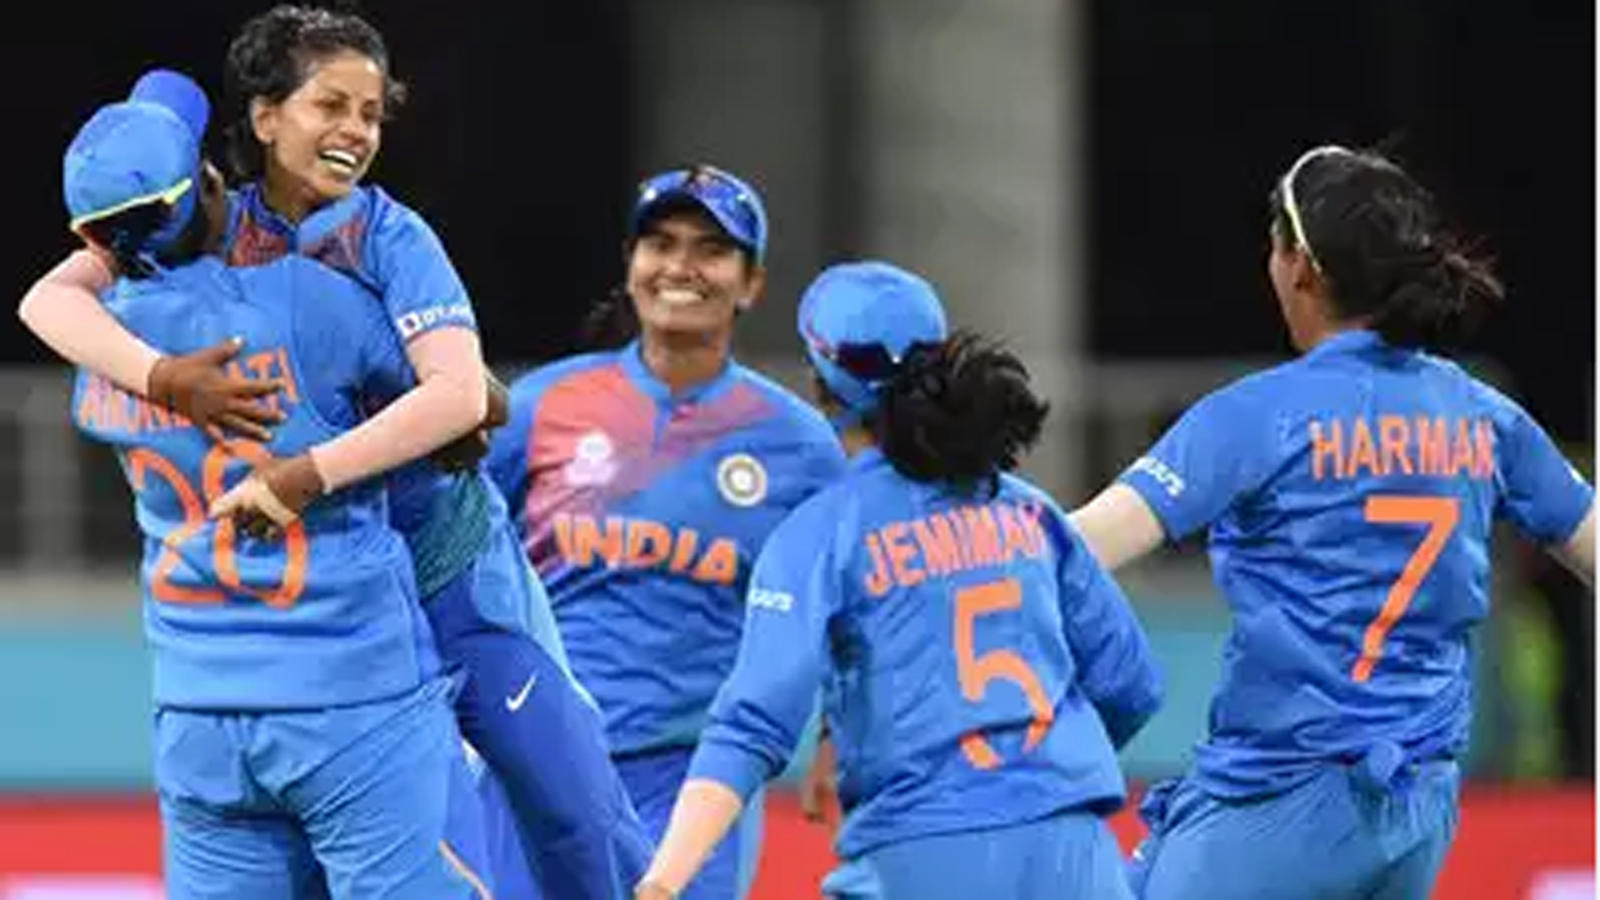 womens-t20-wc-poonam-yadavs-mother-proud-of-team-indias-win-against-australia